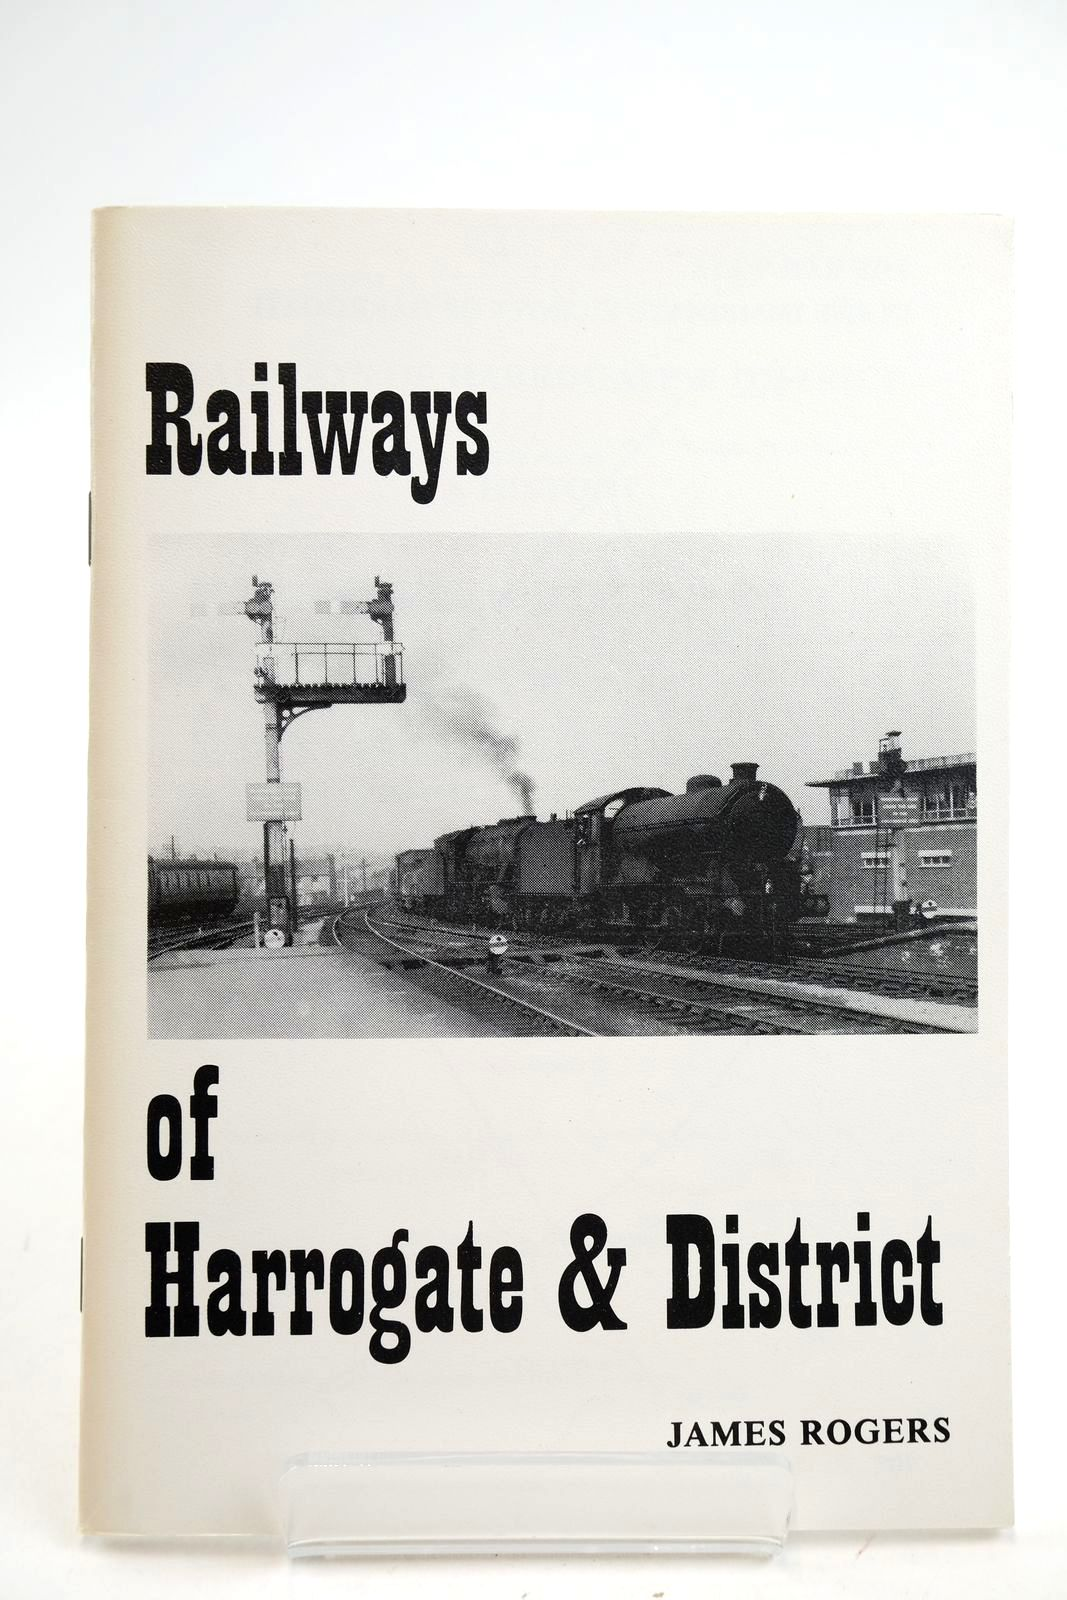 Photo of RAILWAYS OF HARROGATE & DISTRICT A HISTORY written by Rogers, James published by Mr. James Rogers (STOCK CODE: 2133142)  for sale by Stella & Rose's Books